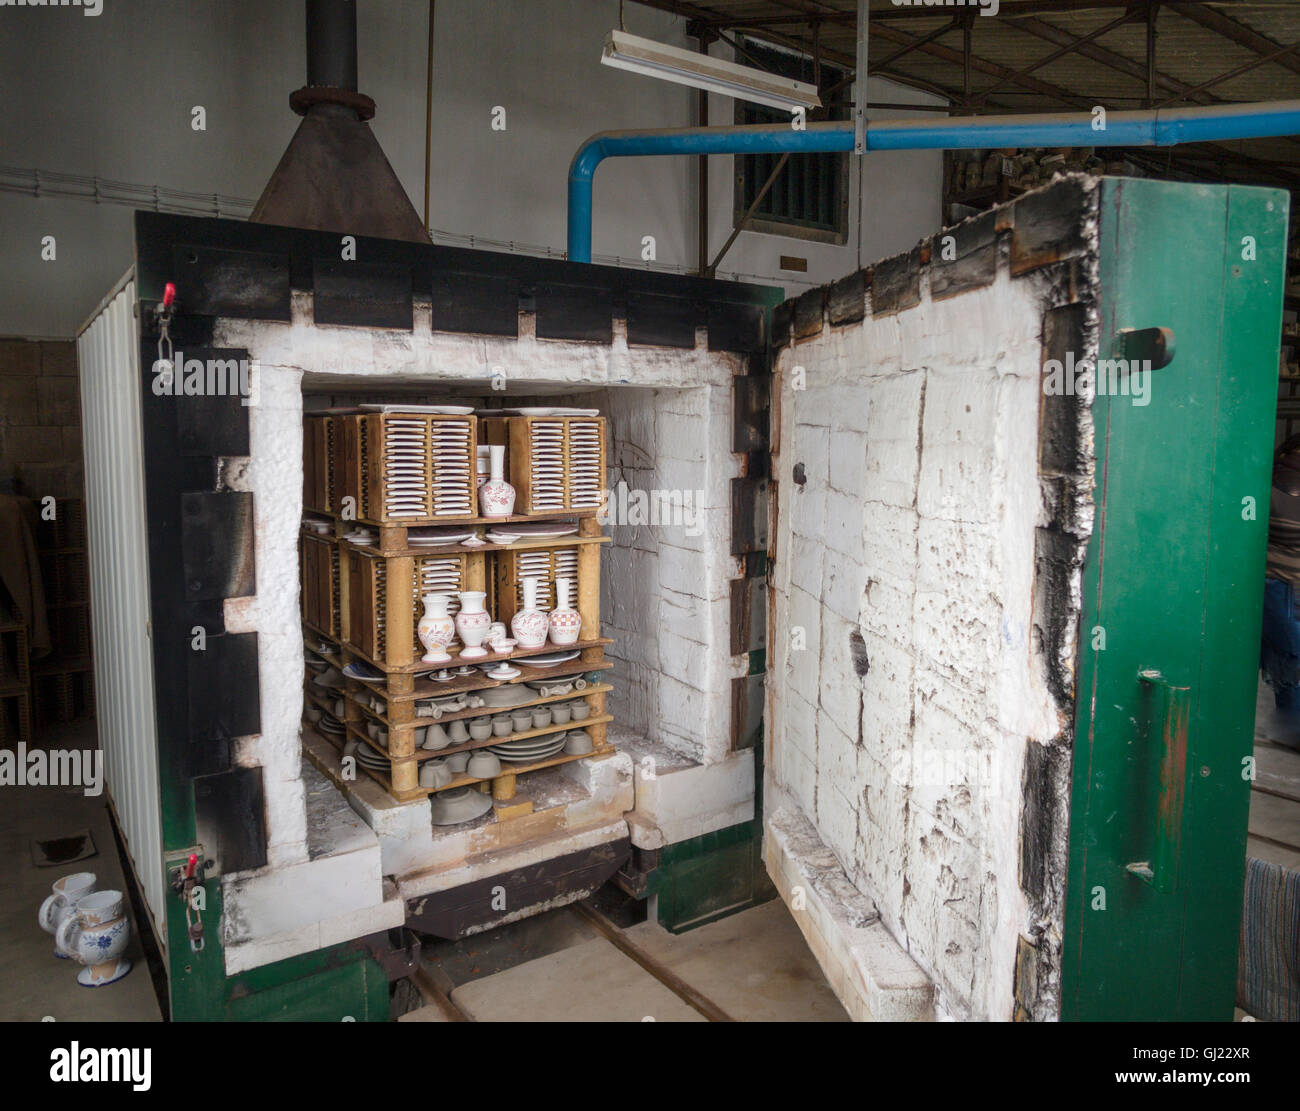 Pottery Furnace/Kiln filled with items to be fired. A batch of pottery stacked inside a large furnace ready to be - Stock Image